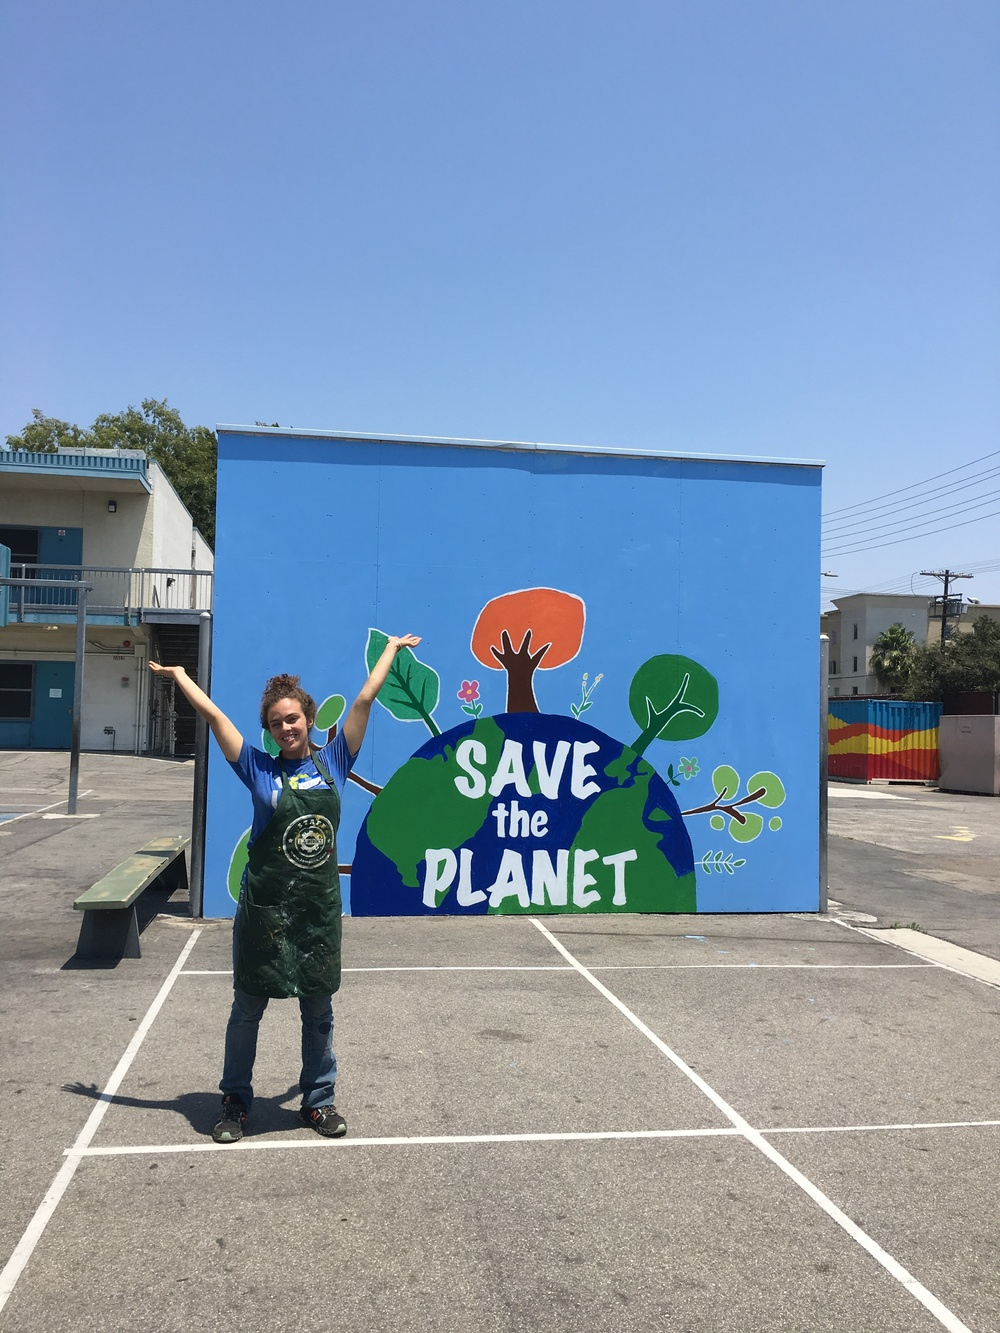 Lauren organized a day of service for Sunset Gower employees to beautify Ramona Elementary. The group painted 4 handball court murals, planted 7 succulent gardens, landscaped, built 2 planter benches, painted 6 benches and installed an aeroponics edible garden unit (donated by LA Urban Gardens)!